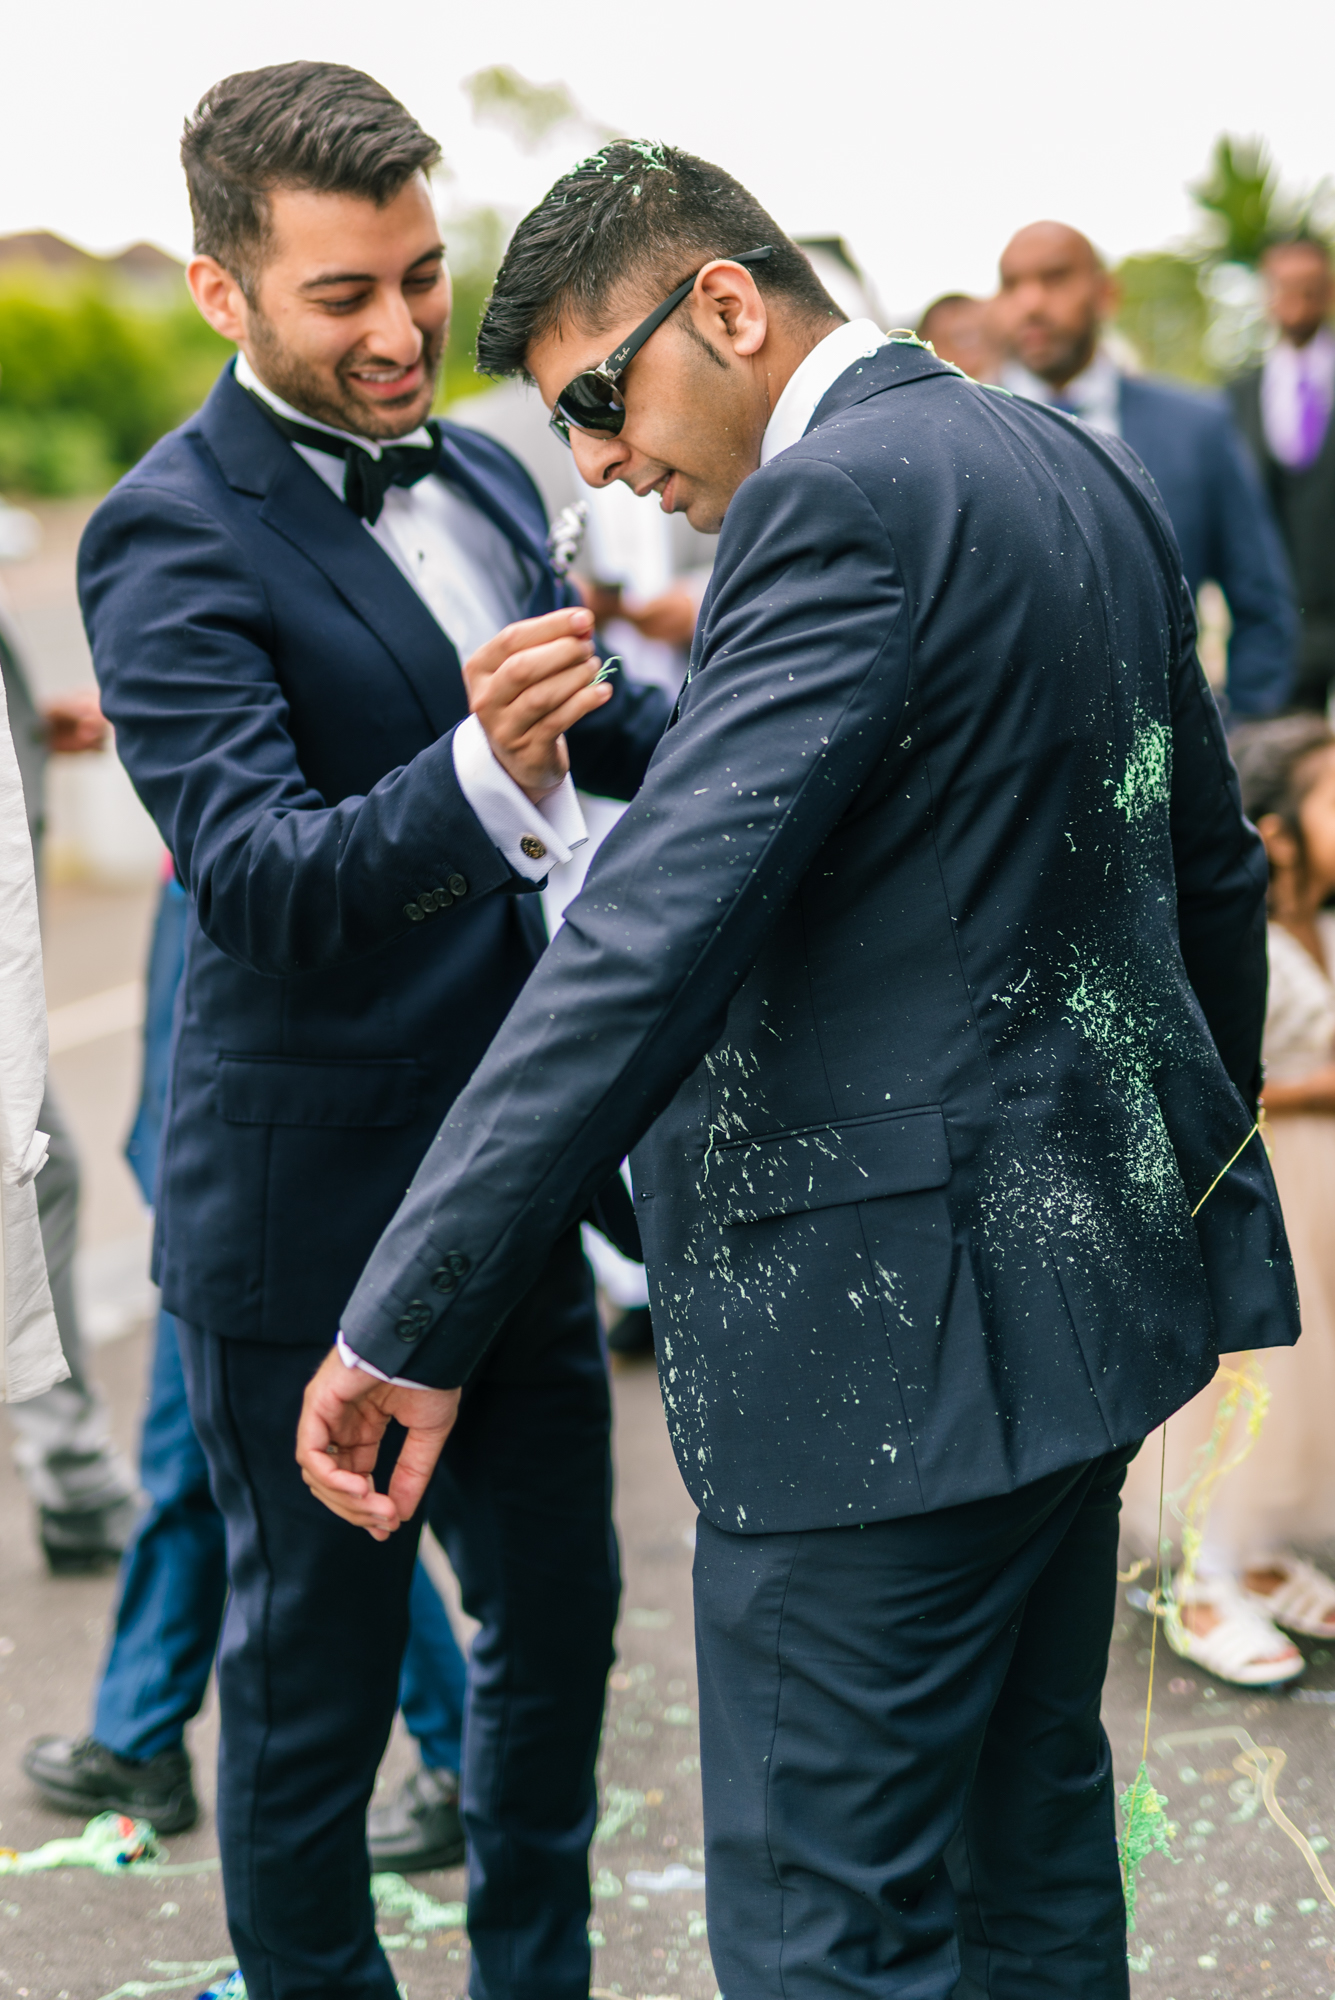 The grooms party make final checks to their suits before they enter the wedding venue